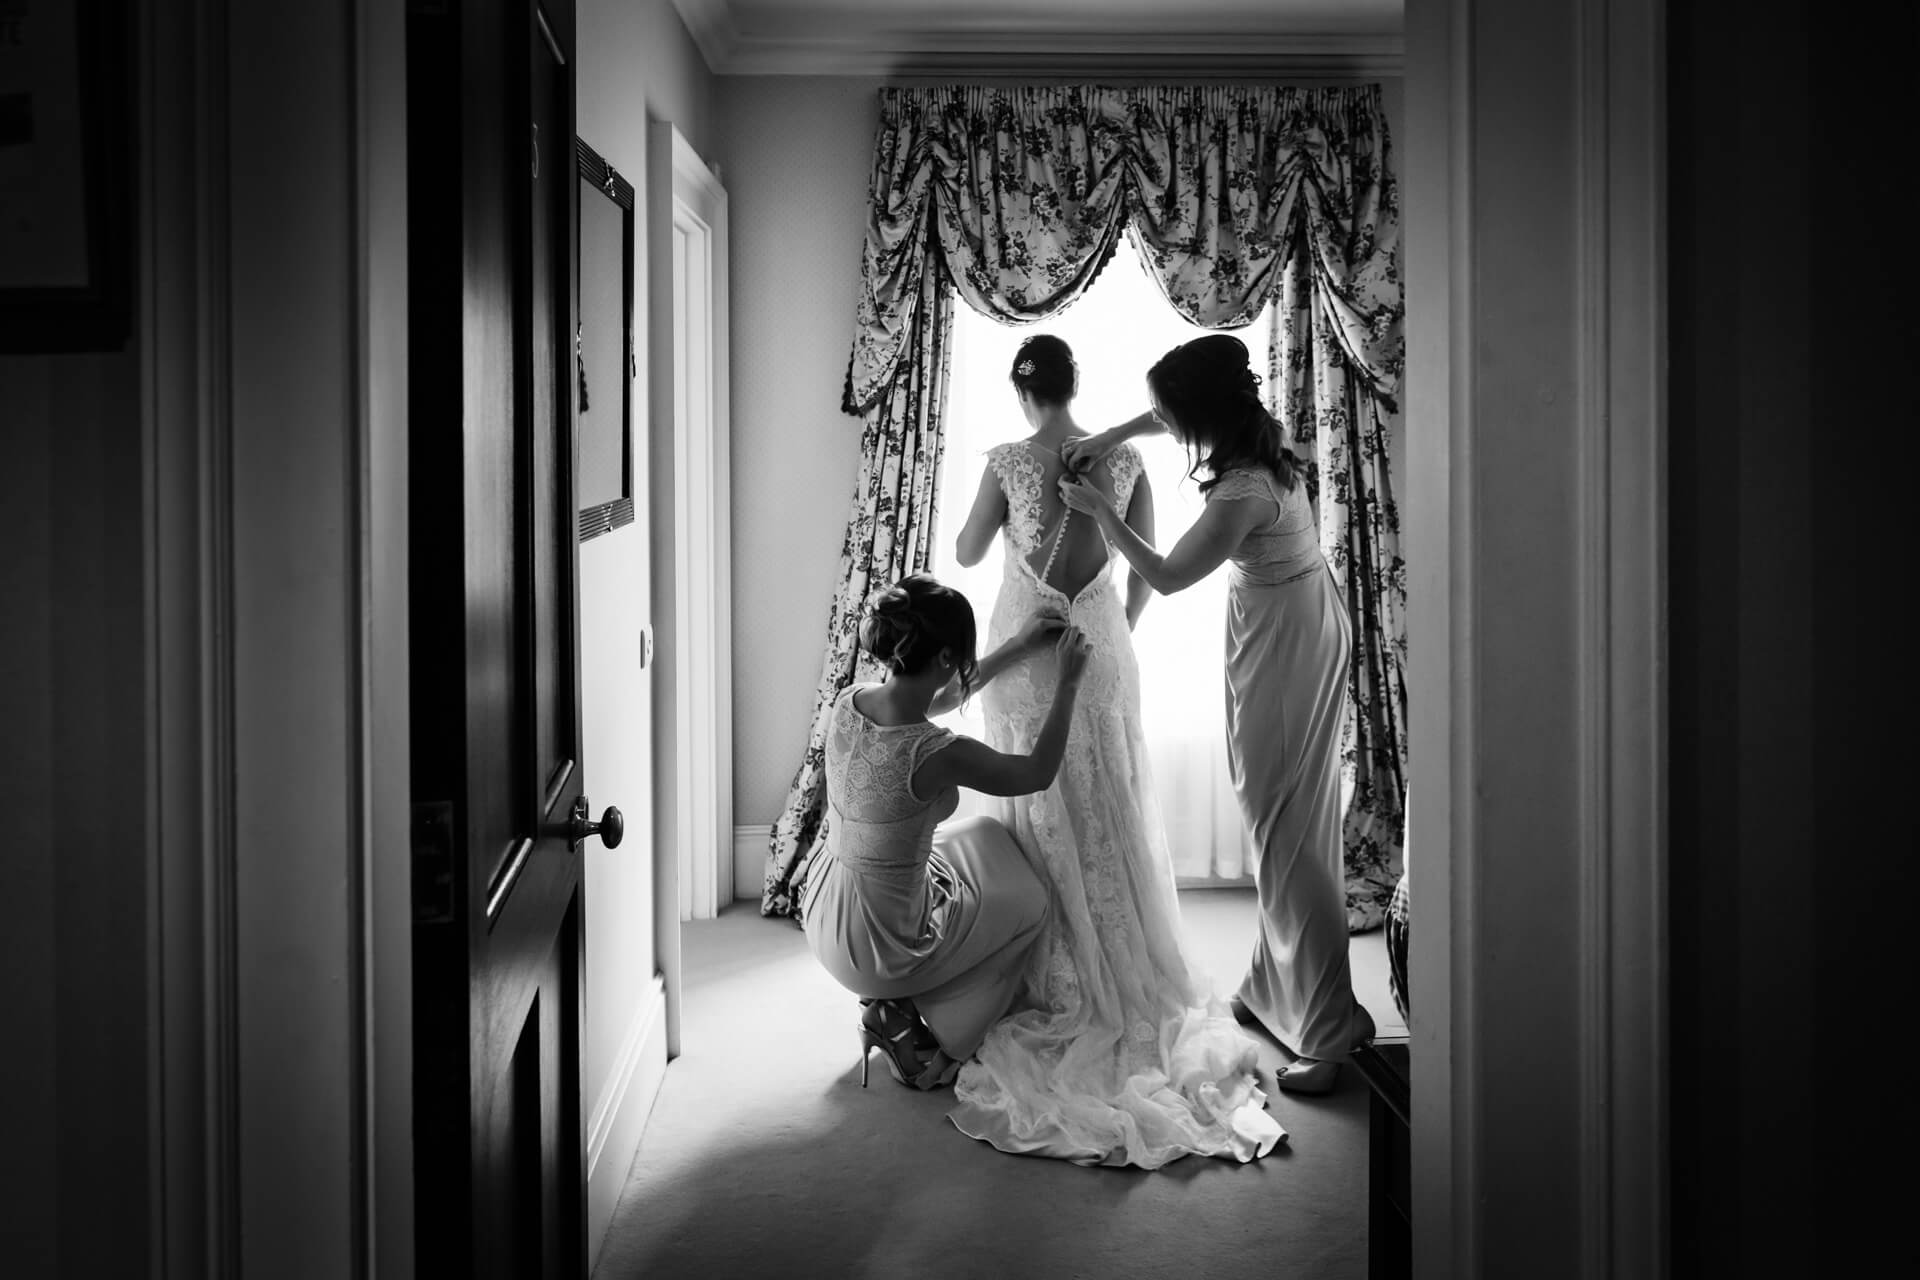 bridesmaids fixing the brides dress at the Grange hotel in york